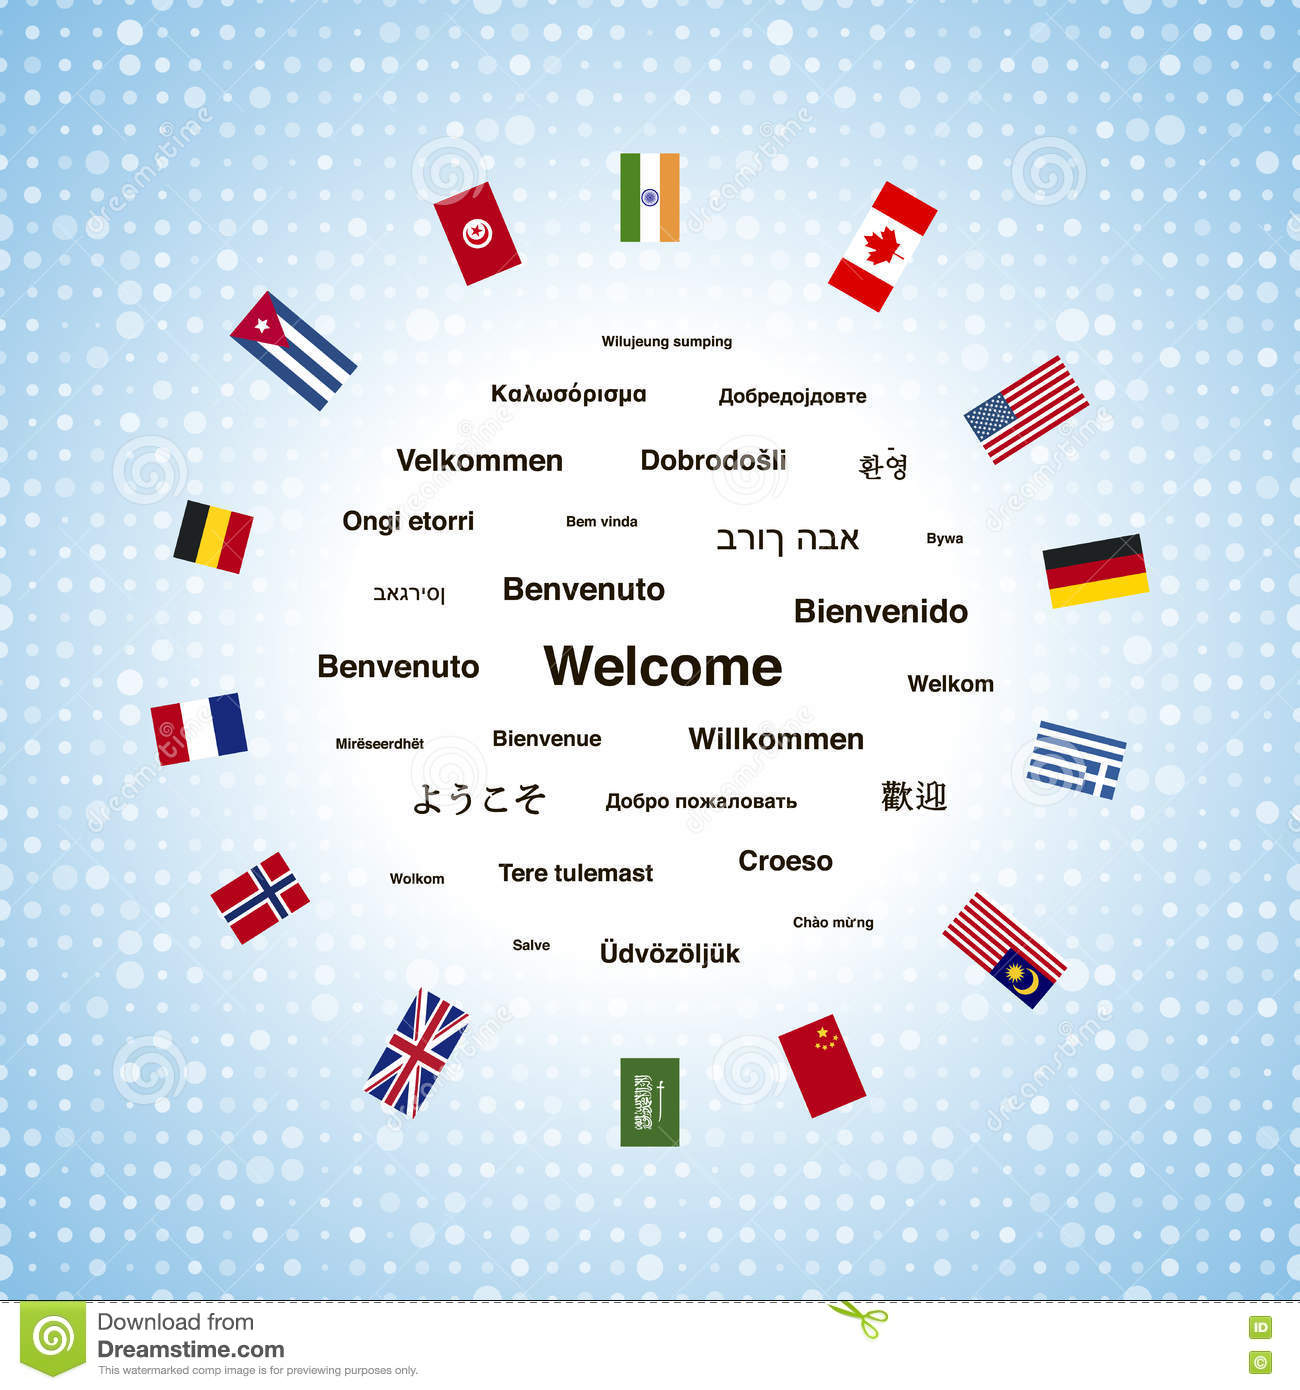 Black Welcome Phrases In Different Languages Of The World And Countries Flags Stock Vector Illustration Of Global Greek 76035959